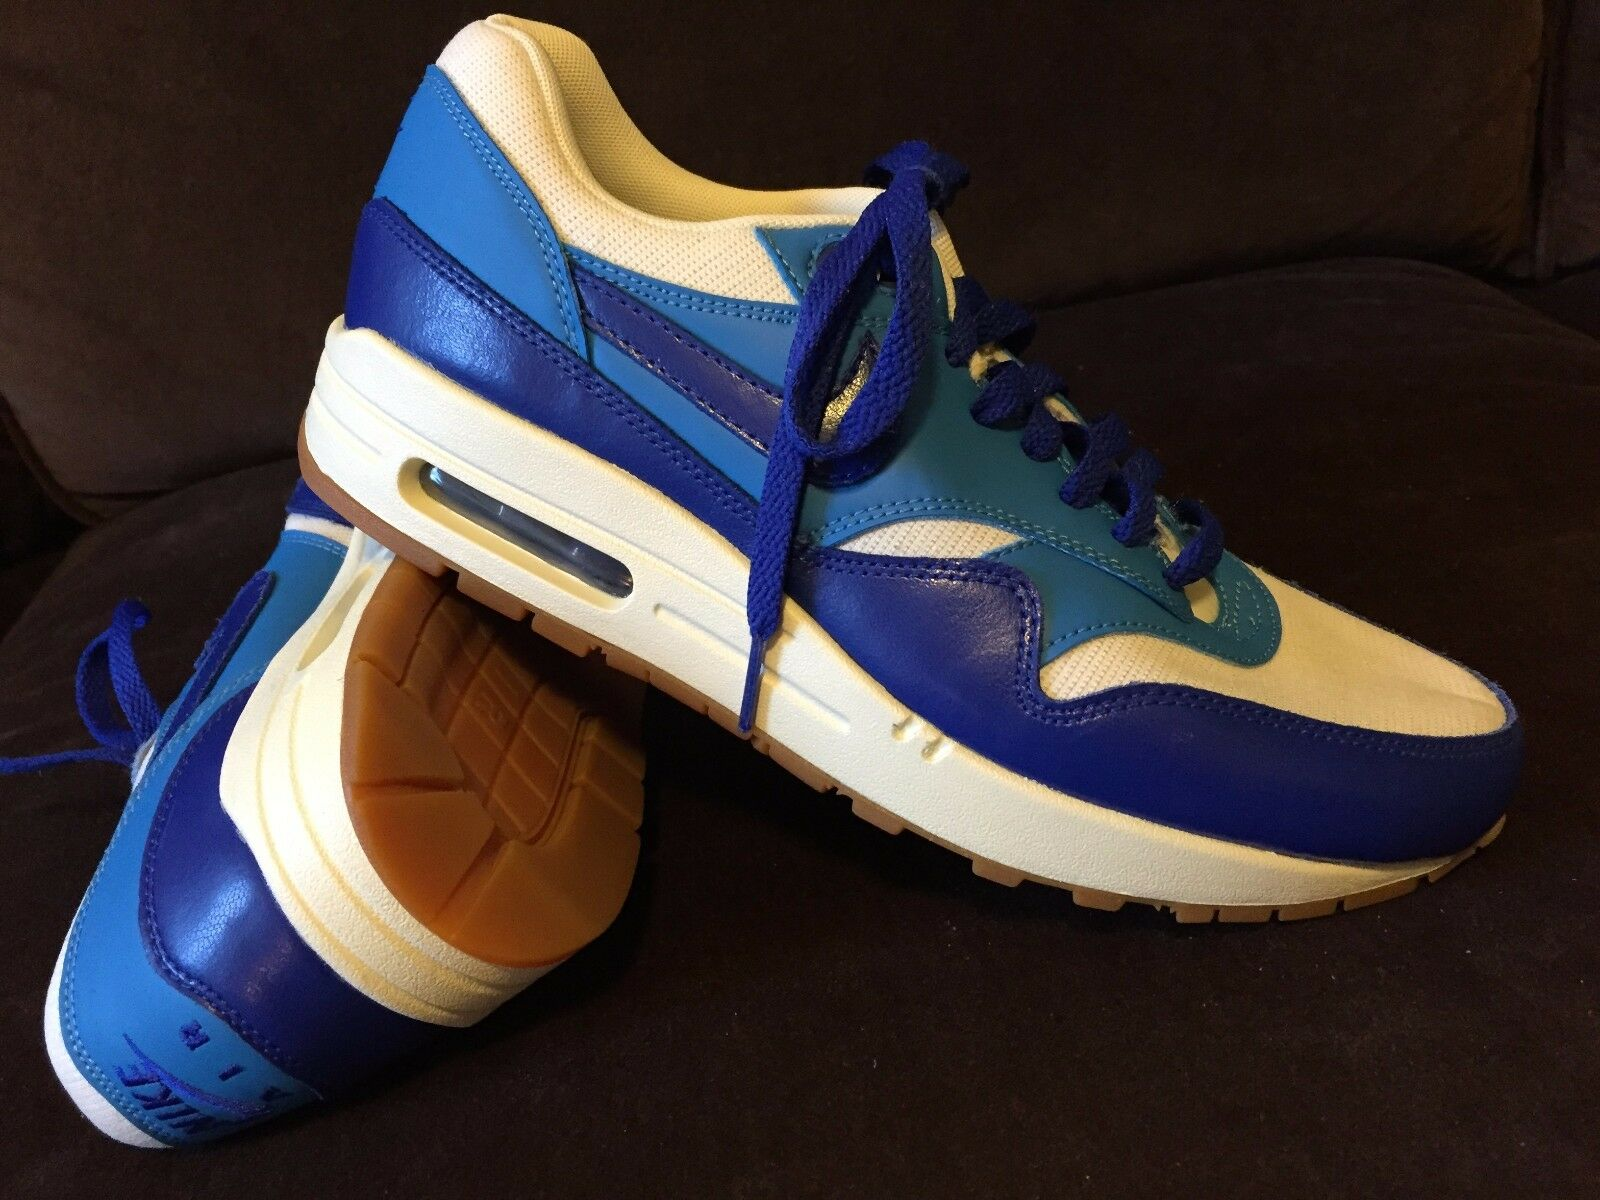 RARE Nike Air Max 90, Mint condition, blanc Bleu, Navy femmes 8.5, 40 EUR